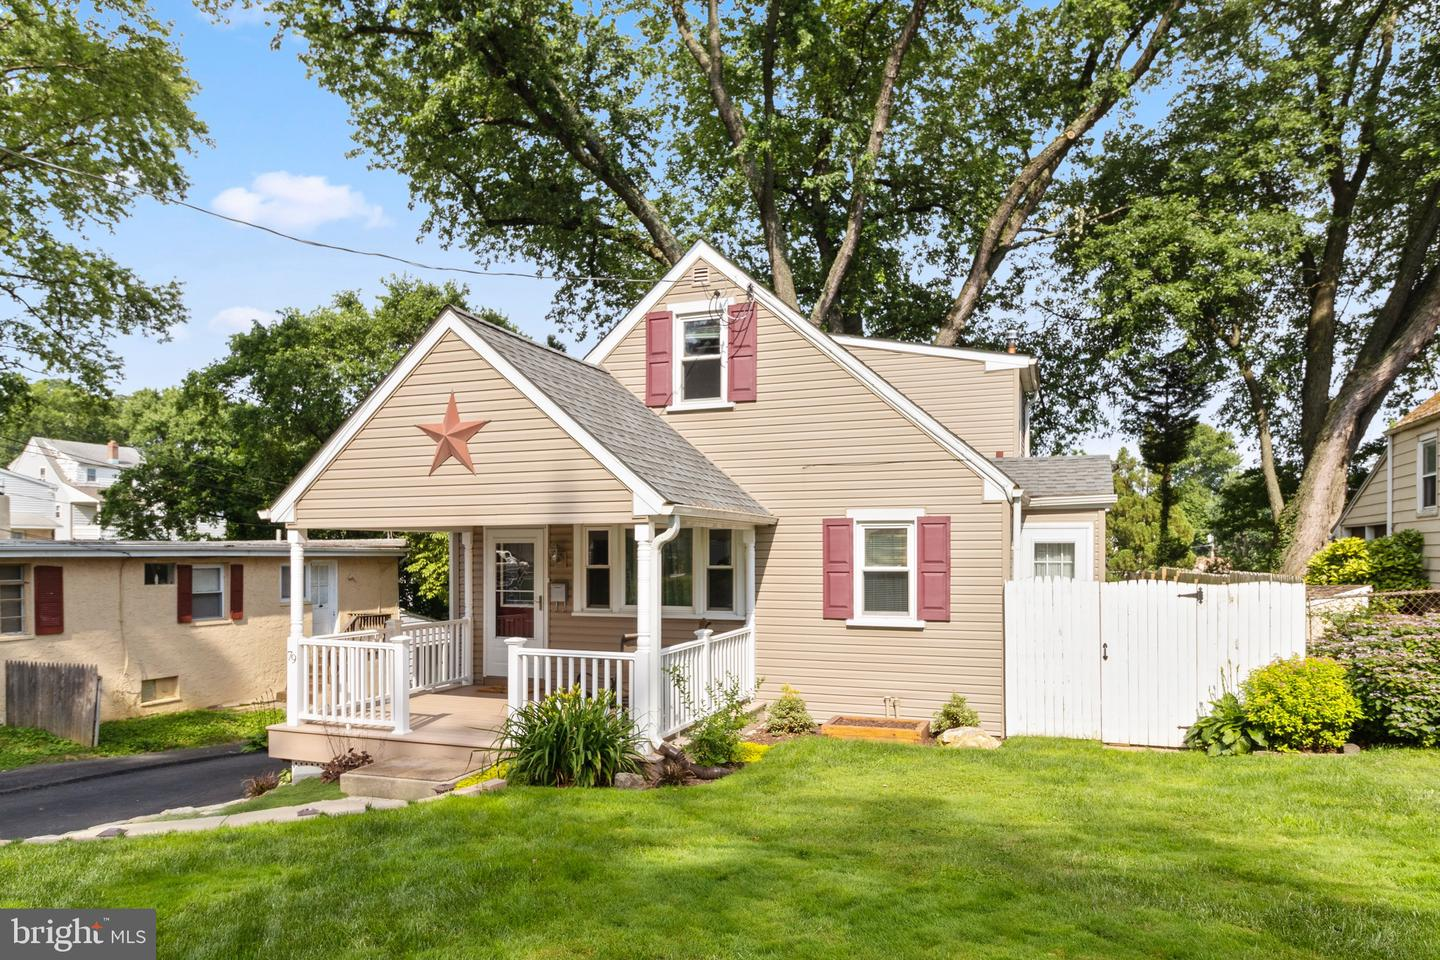 79 2nd Avenue Broomall, PA 19008